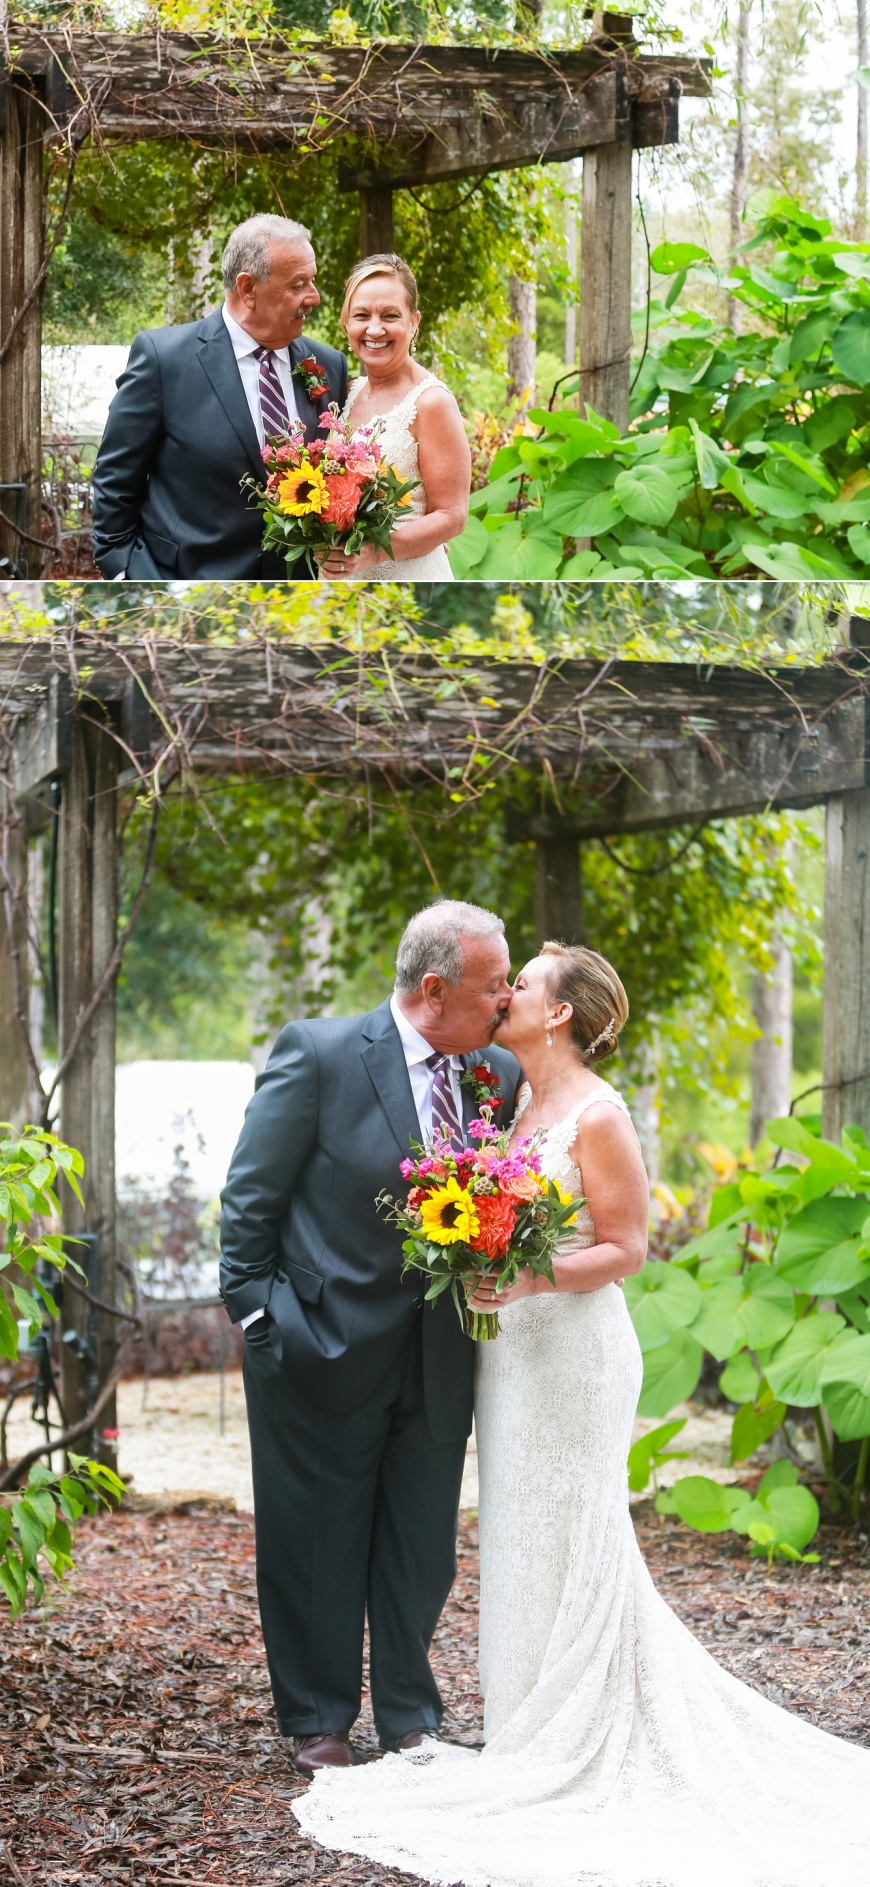 Coldwater-Gardens-Wedding-Photographer_1049.jpg